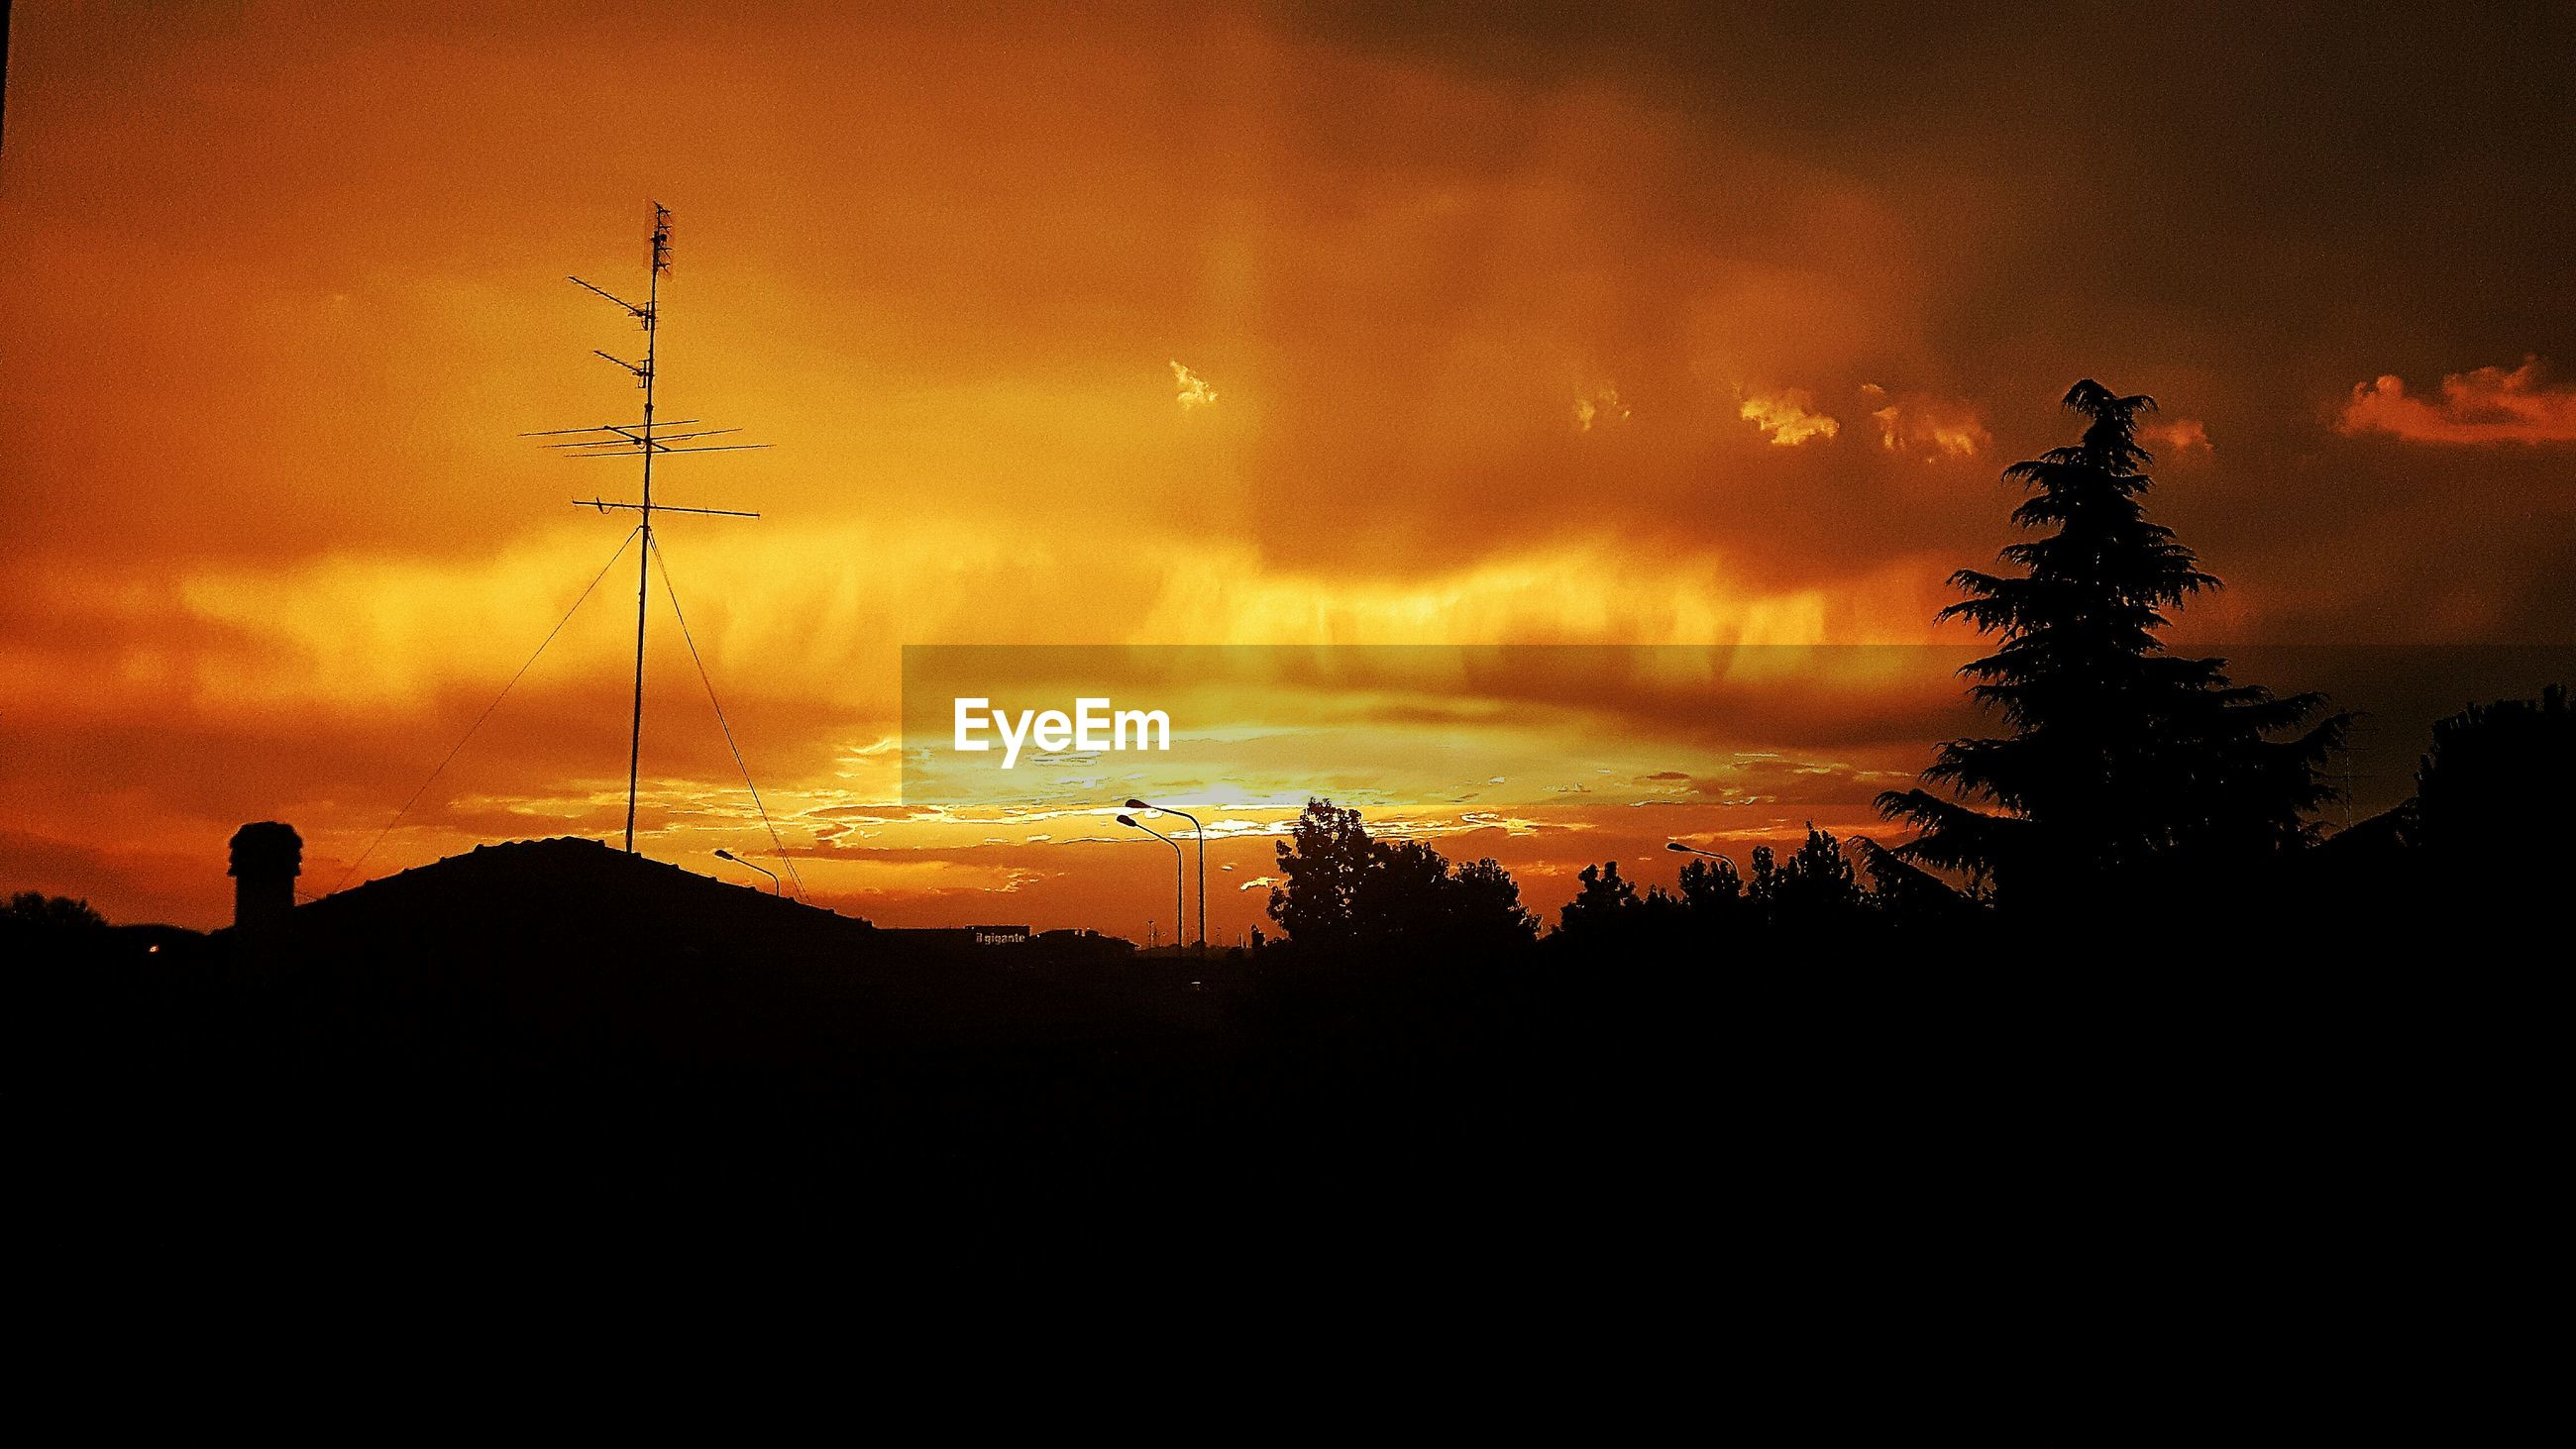 sunset, silhouette, sky, nature, orange color, cloud - sky, beauty in nature, tranquil scene, scenics, tranquility, tree, no people, outdoors, landscape, technology, day